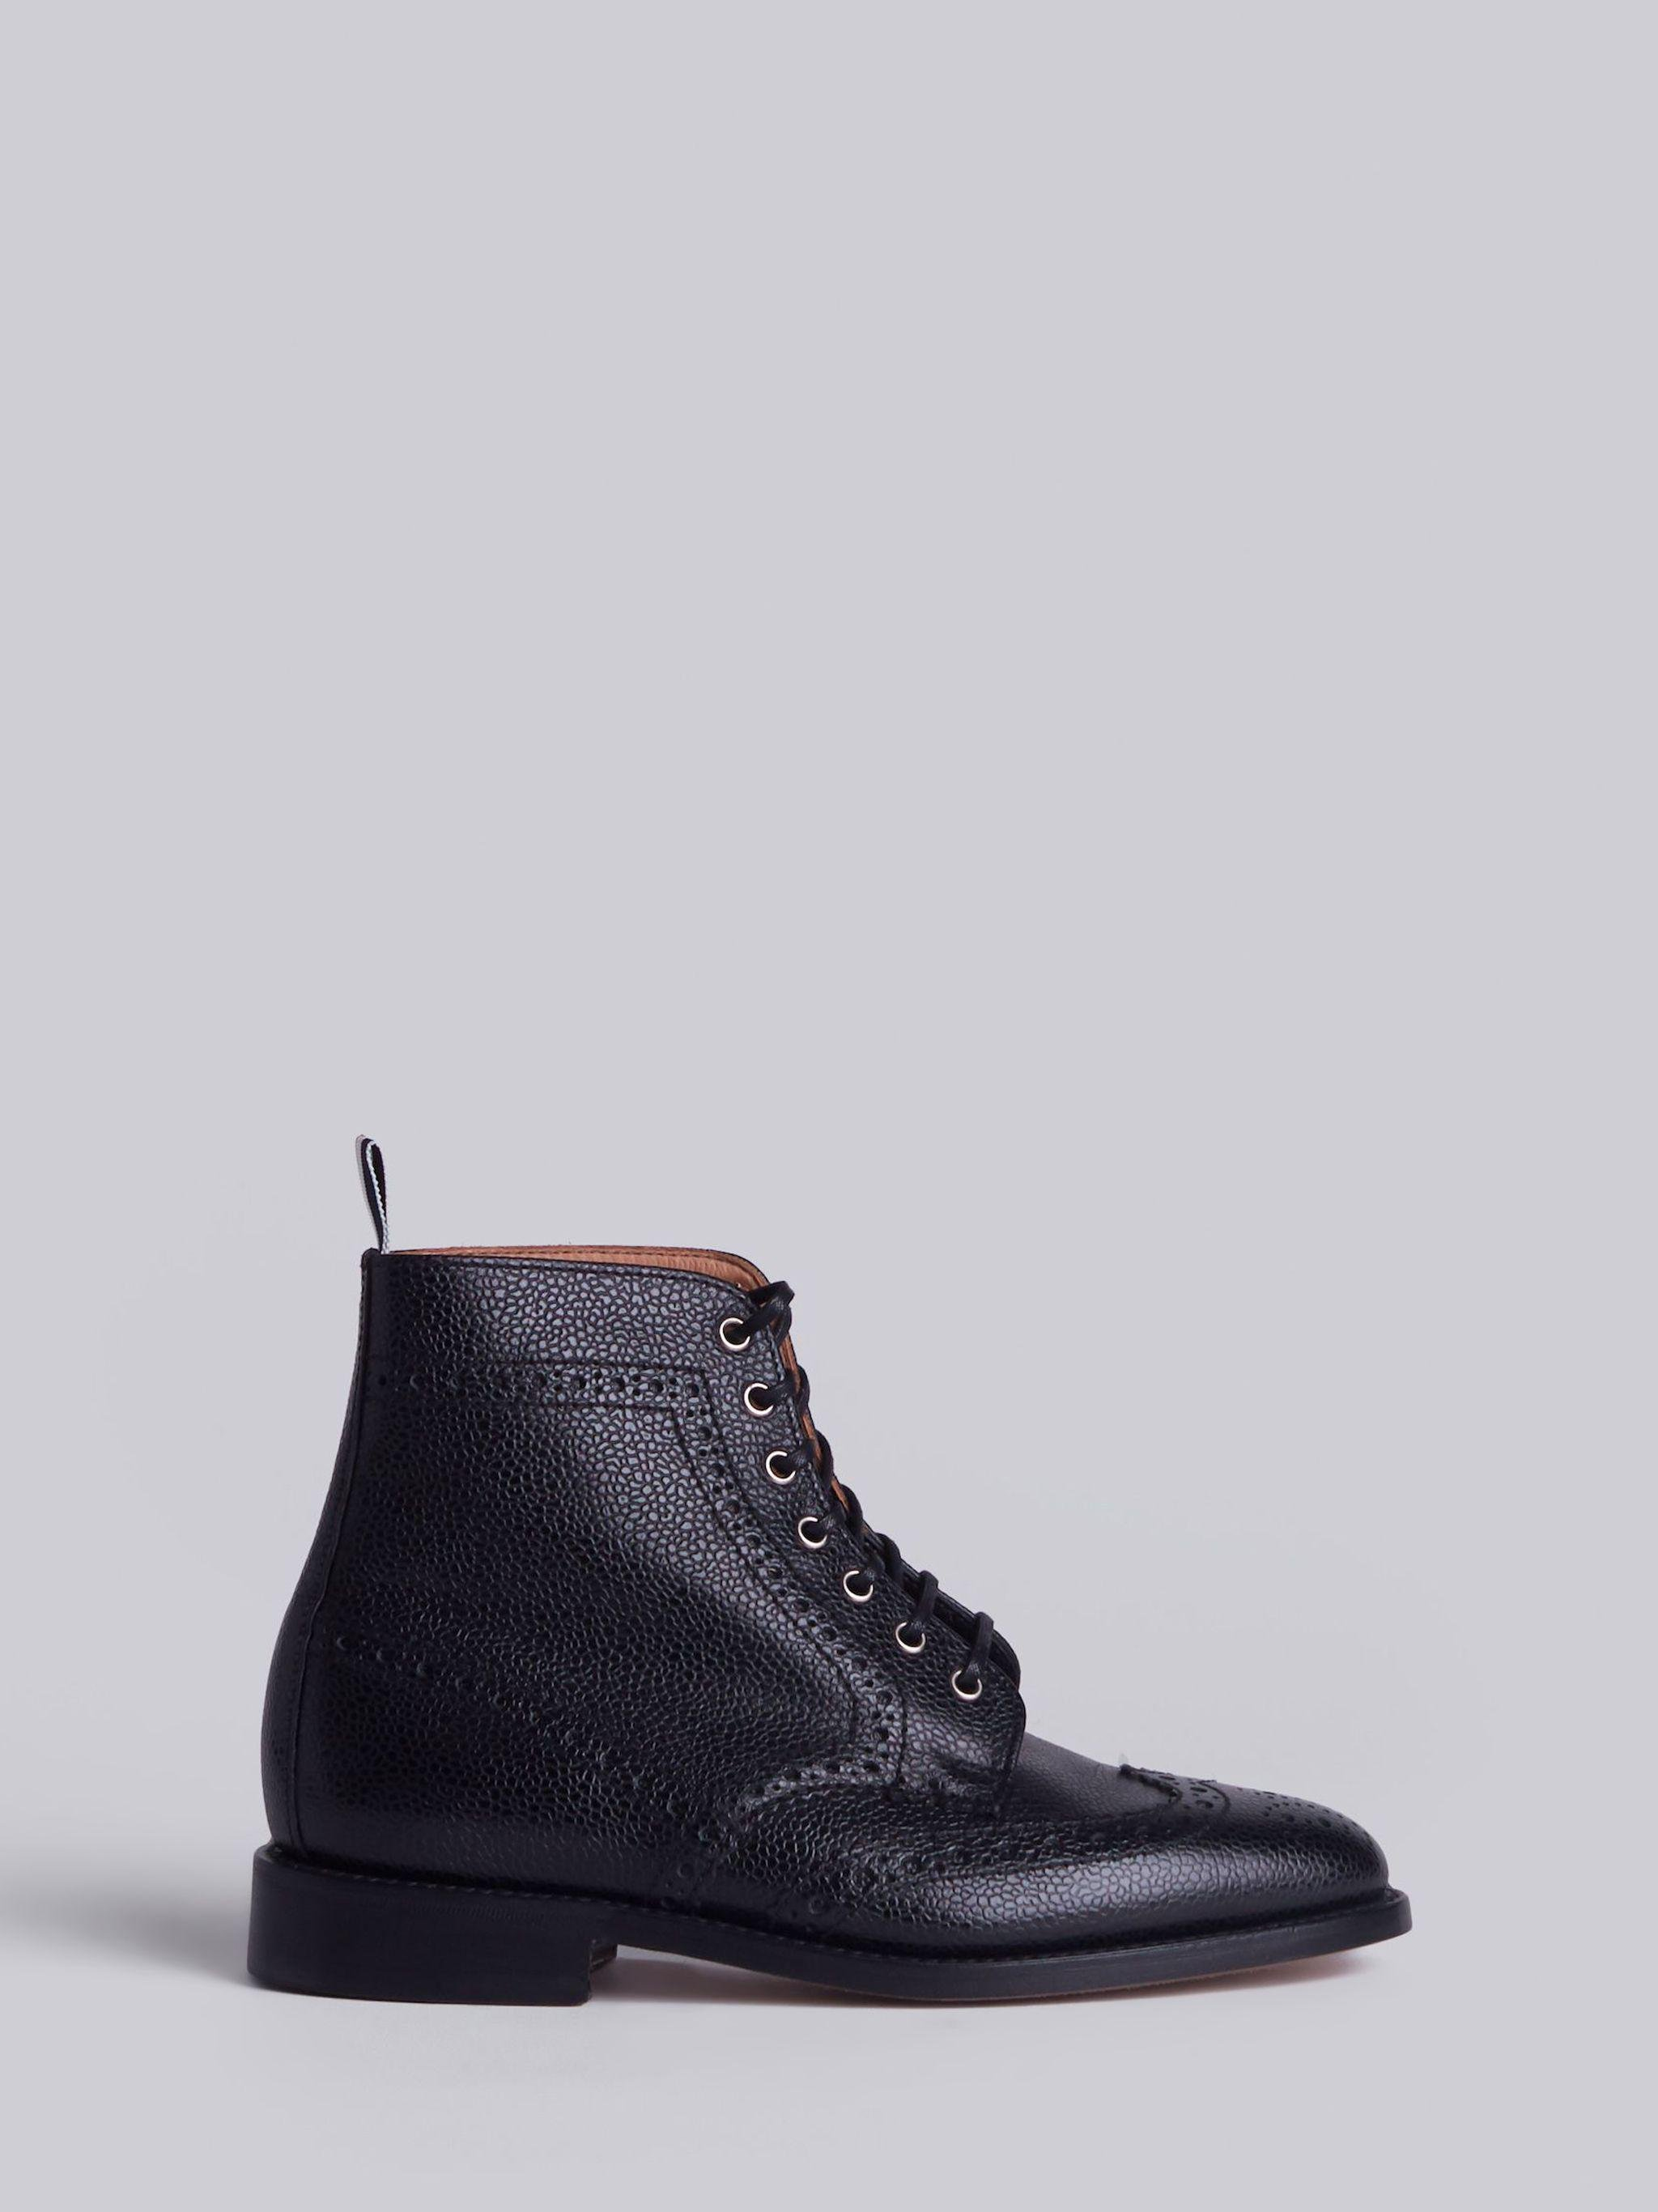 Wingtip Brogue Boot With Leather Sole In Black Pebble Grain